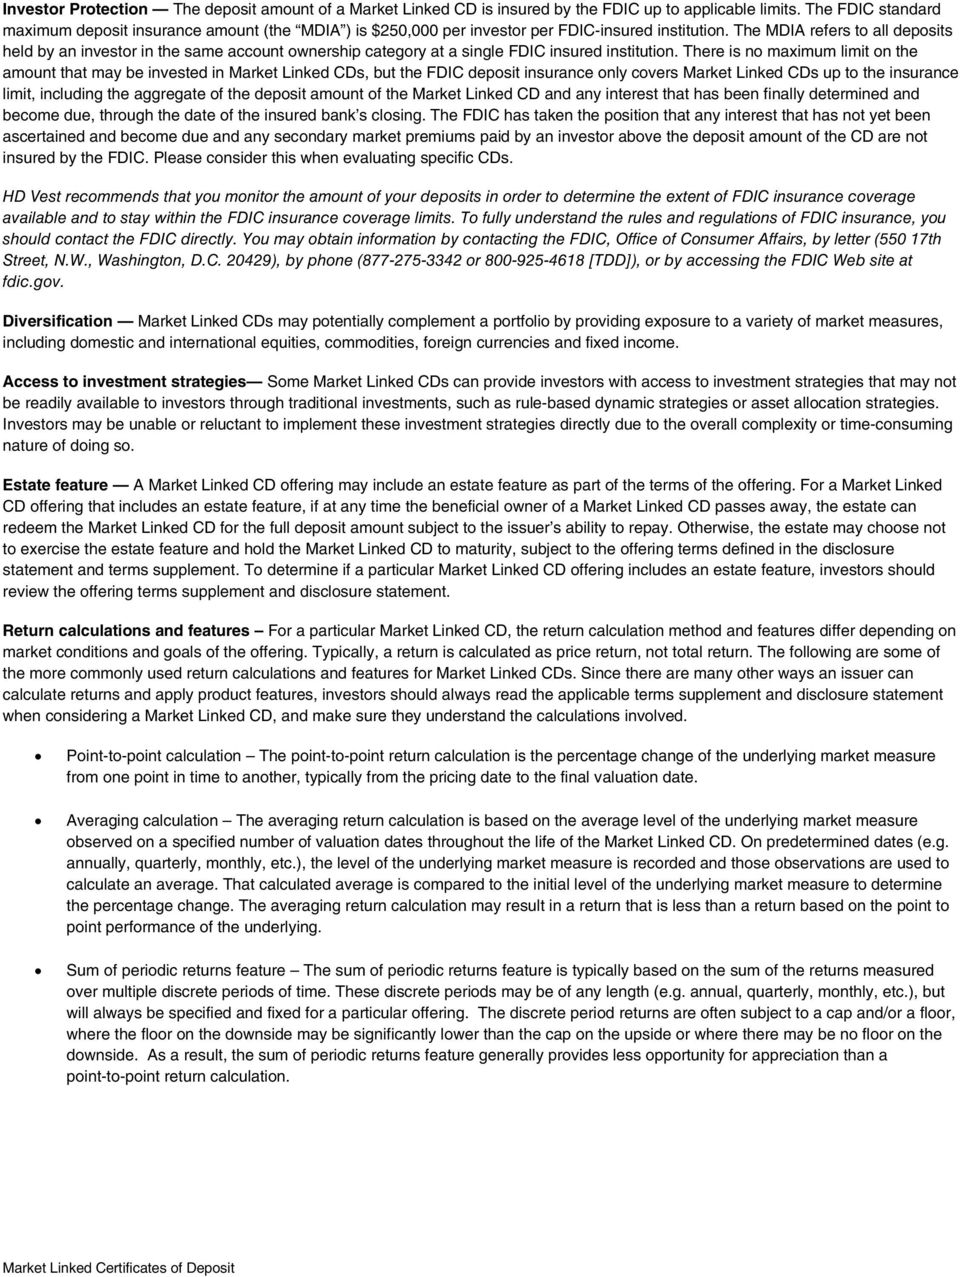 Guide To Investing In Market Linked Certificates Of Deposit Pdf